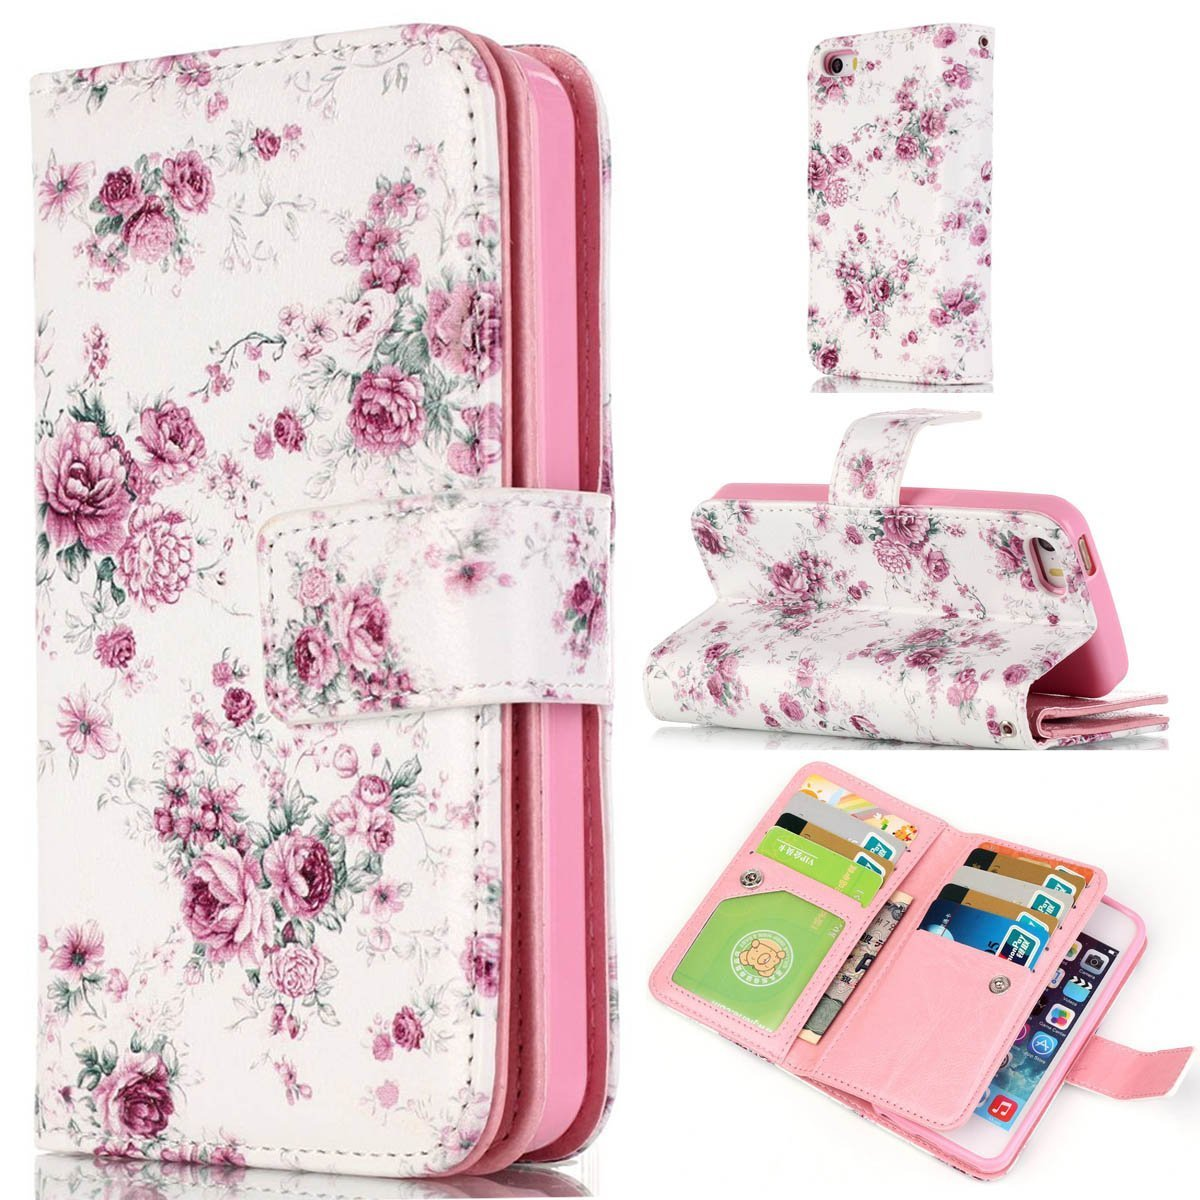 iPhone 6 Case,iPhone 6S Case,Gift_Source [Multi Card Wallet] [Photo card slots] Premium Magnetic PU Leather Wallet with Built-in 9 Card Slots Folio Flip Case For Apple iPhone 6s / 6 [Peony]